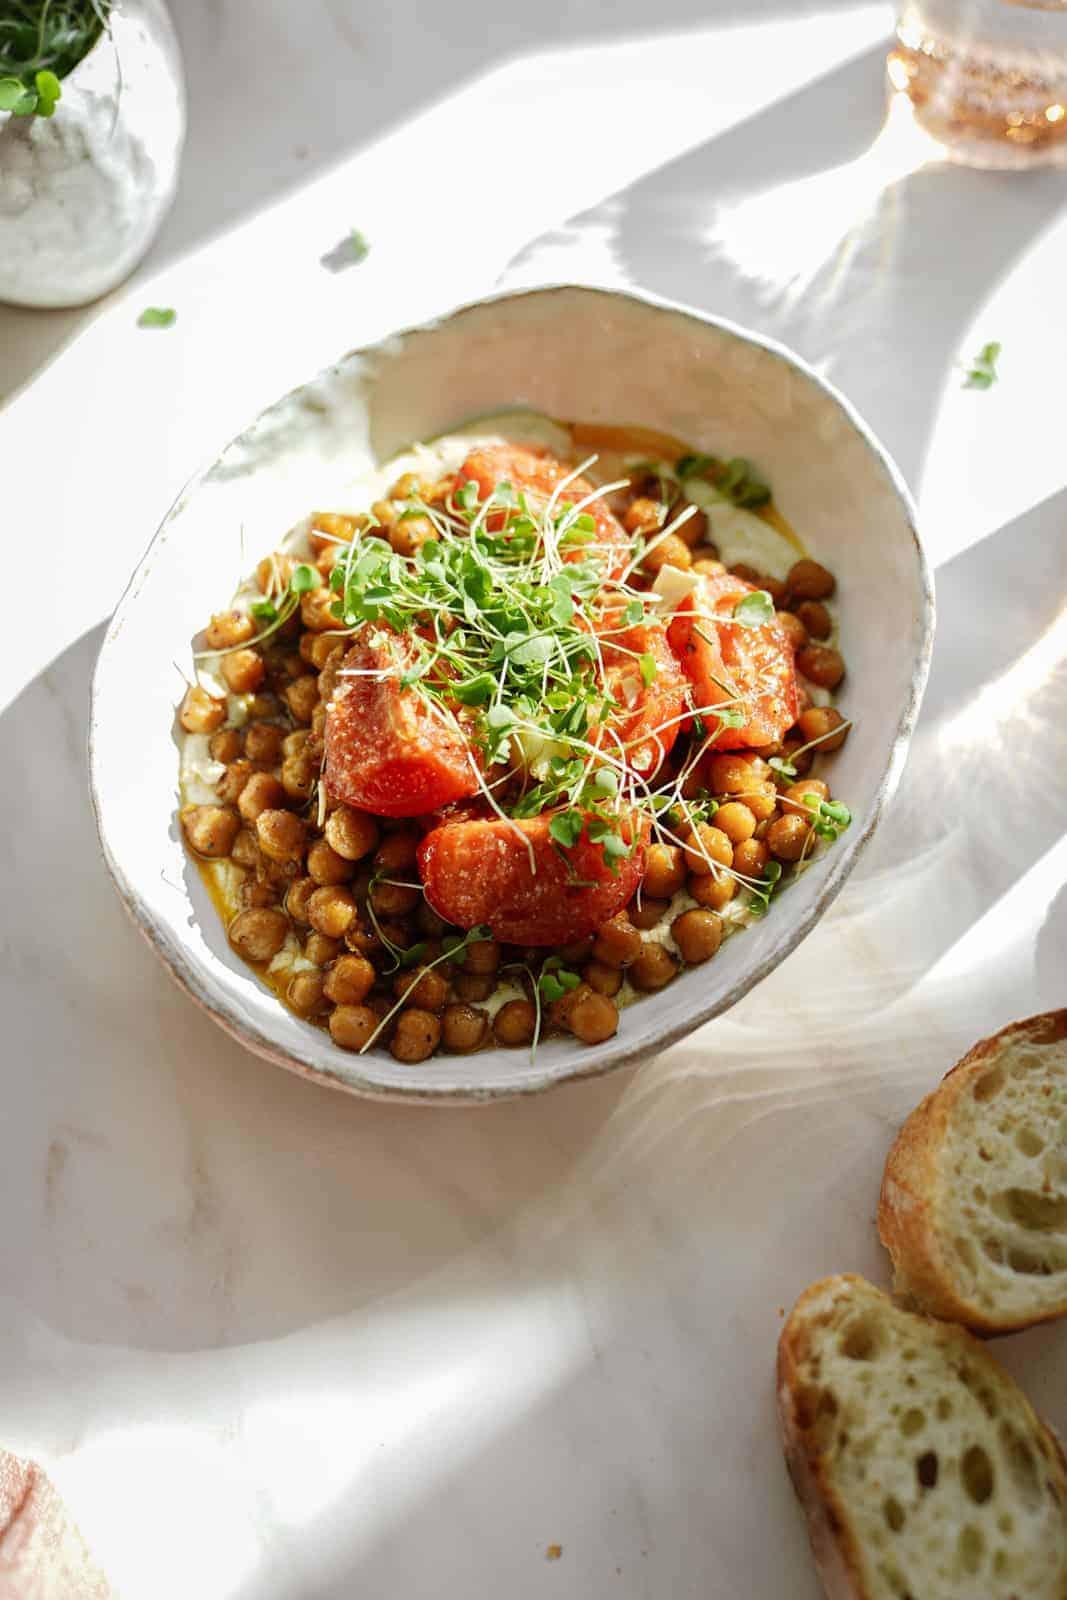 oven-roasted chickpeas in a white bowl with slices of bread next to it